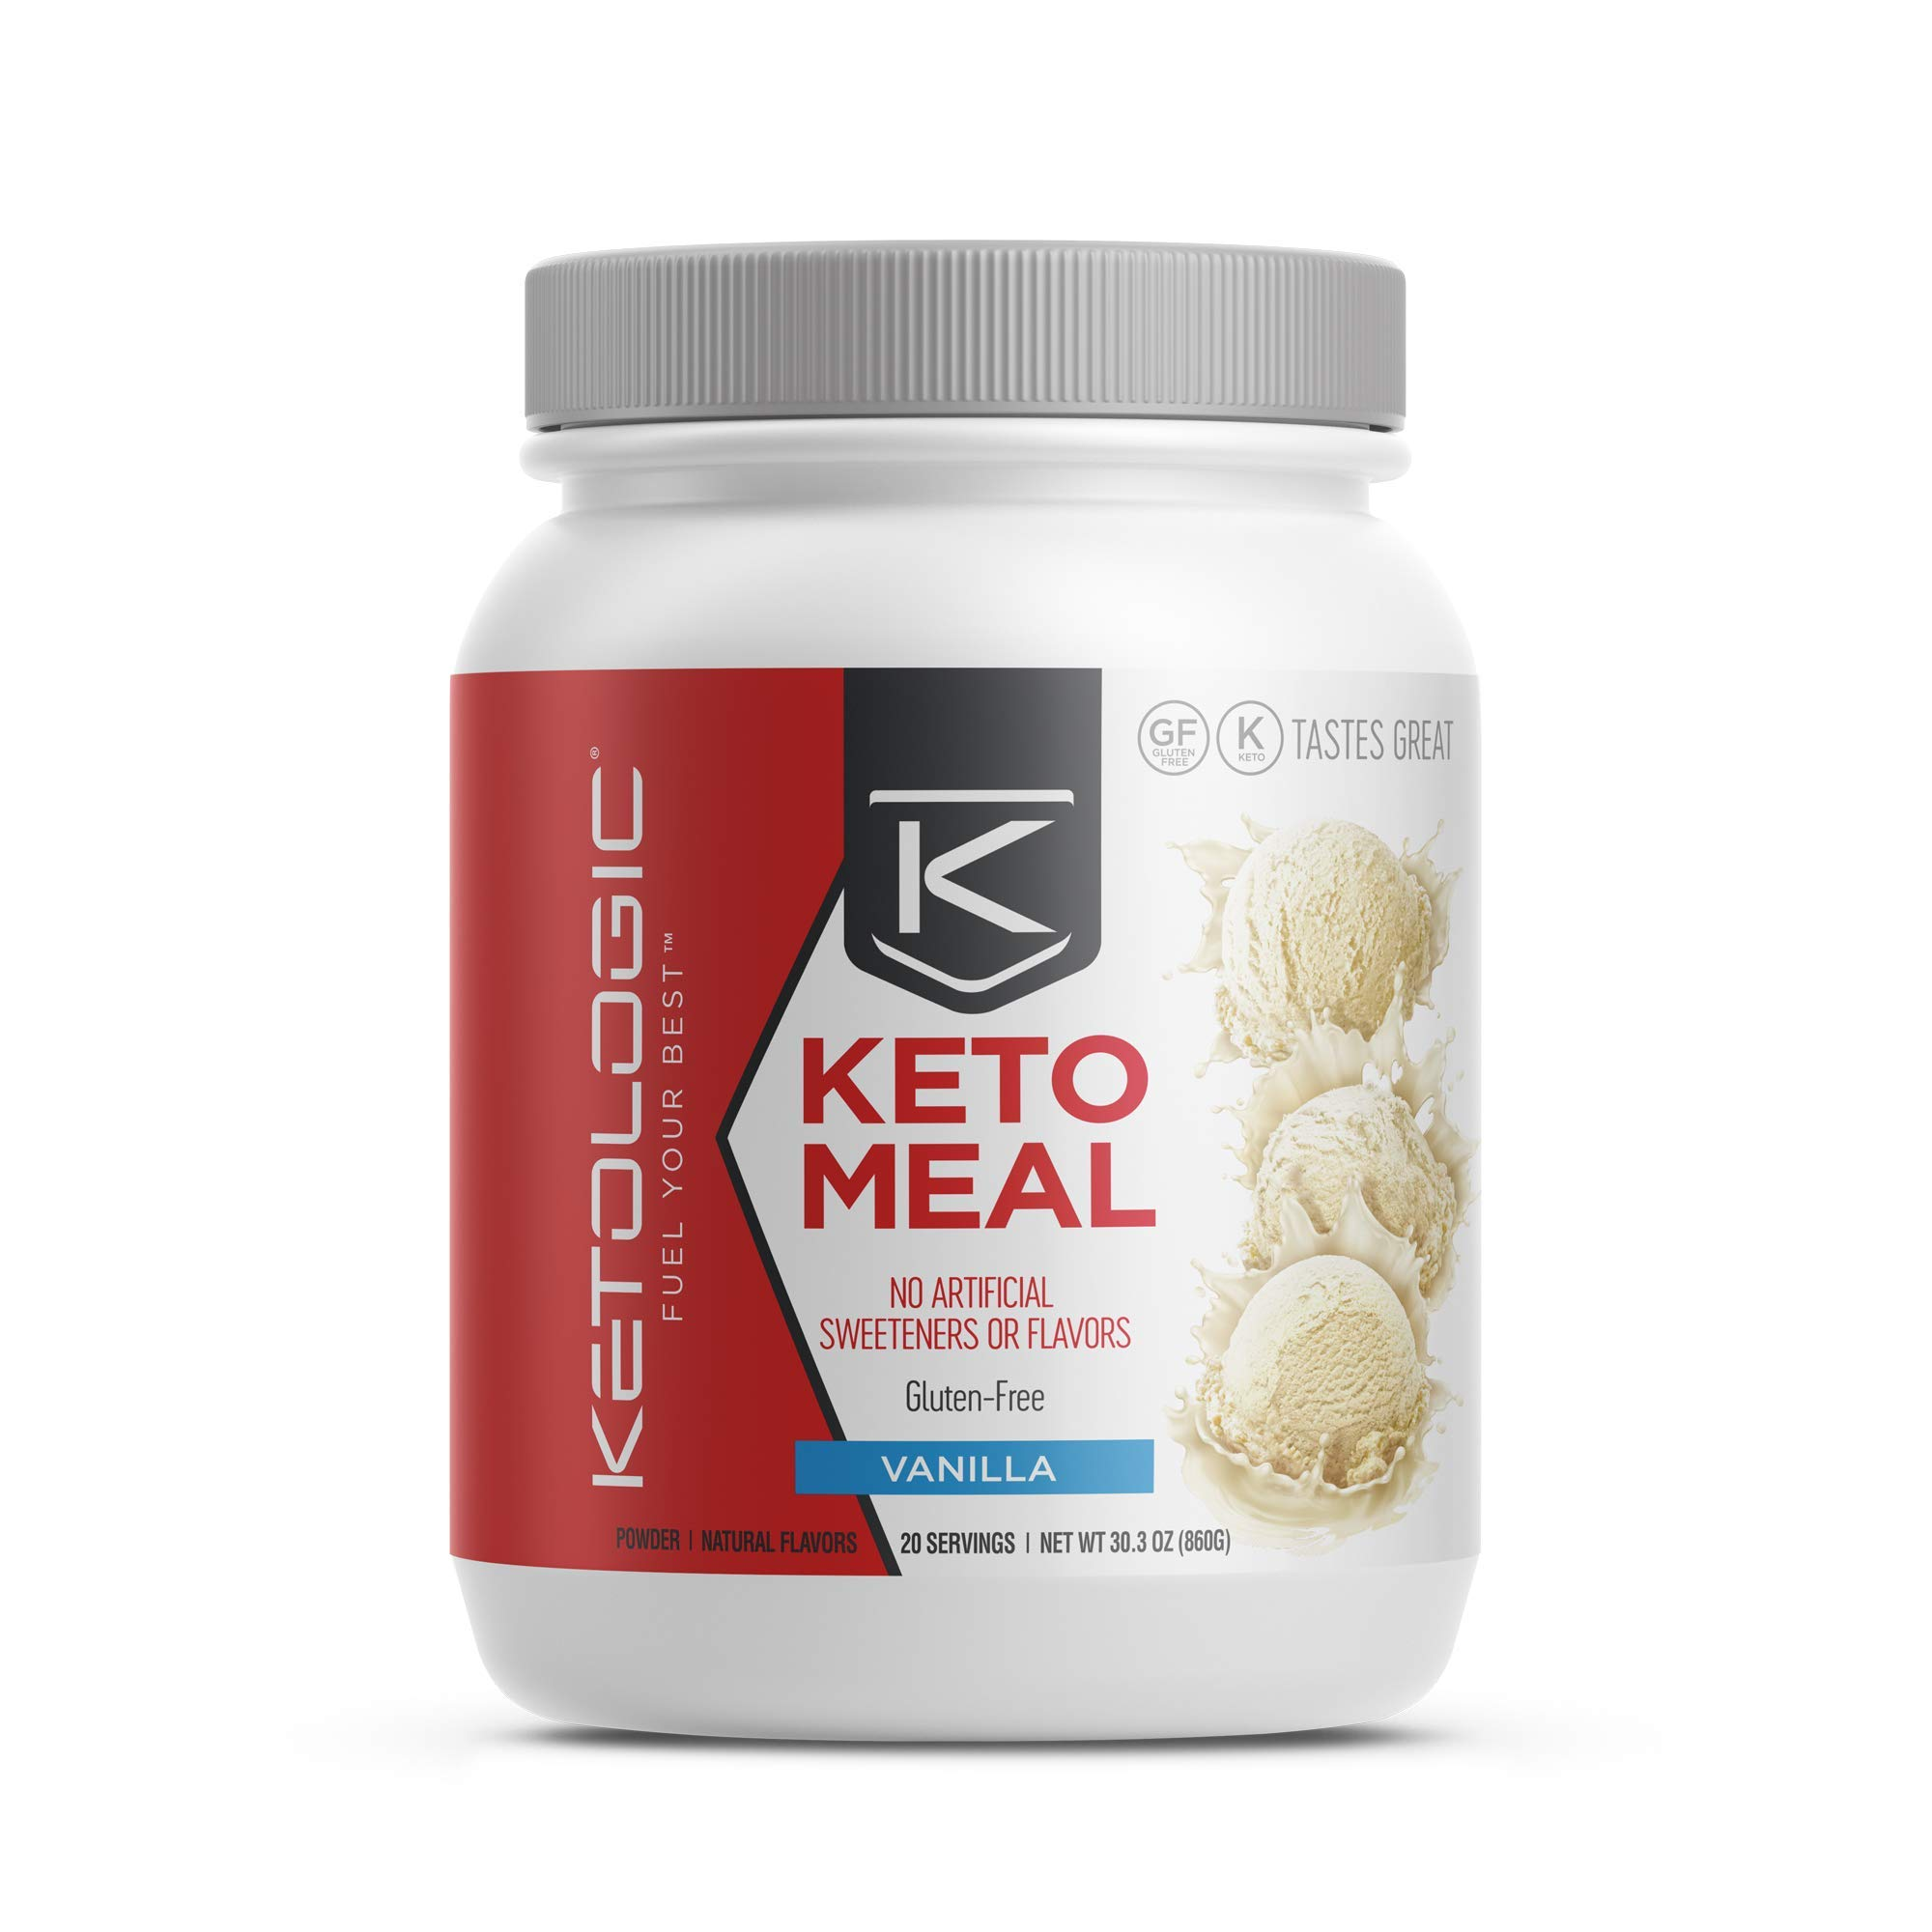 KetoLogic Keto Meal Replacement Shake with MCT, Vanilla | Low Carb, High Fat Keto Shake | Promotes Weight Loss & Suppresses Appetite | 20 Servings by Ketologic (Image #1)